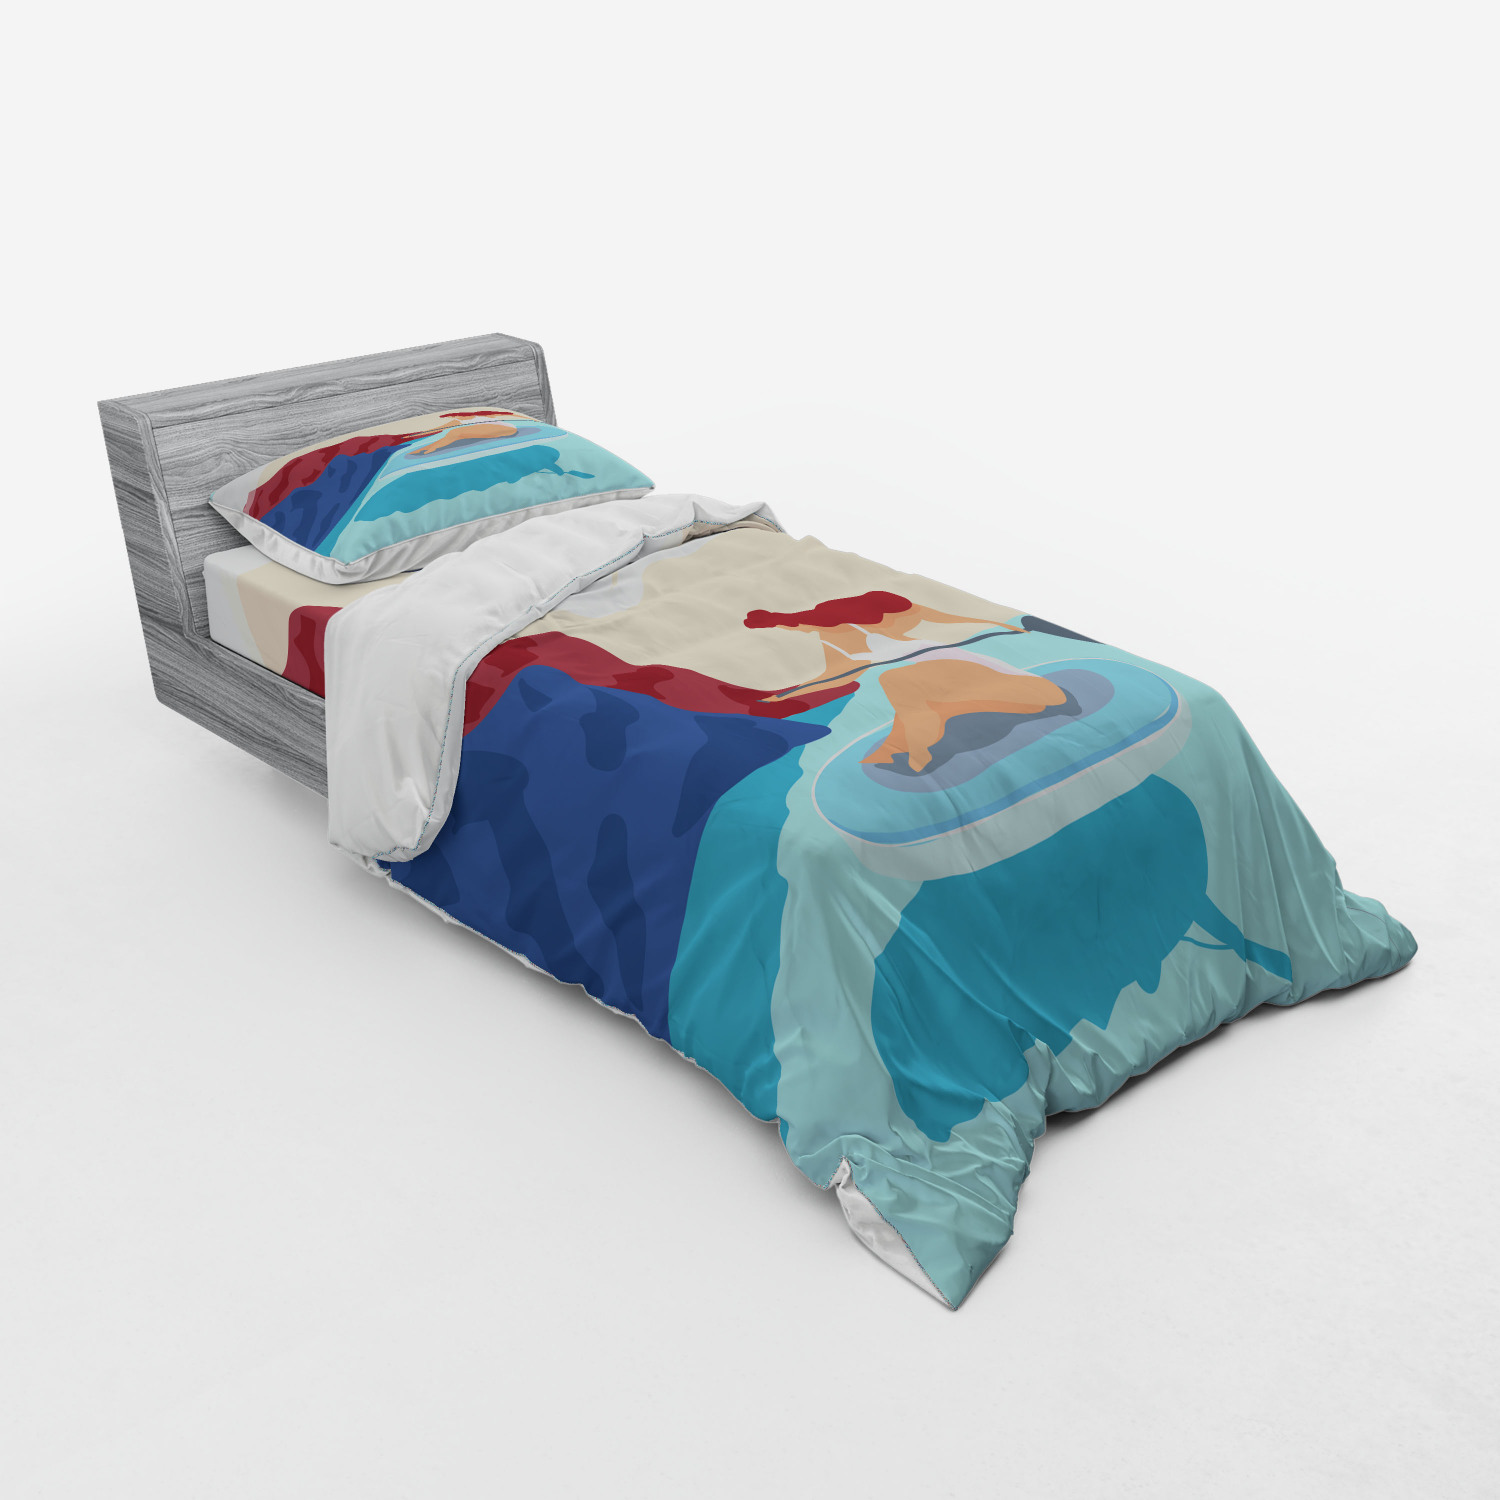 thumbnail 93 - Ambesonne Summer Bedding Set Duvet Cover Sham Fitted Sheet in 3 Sizes